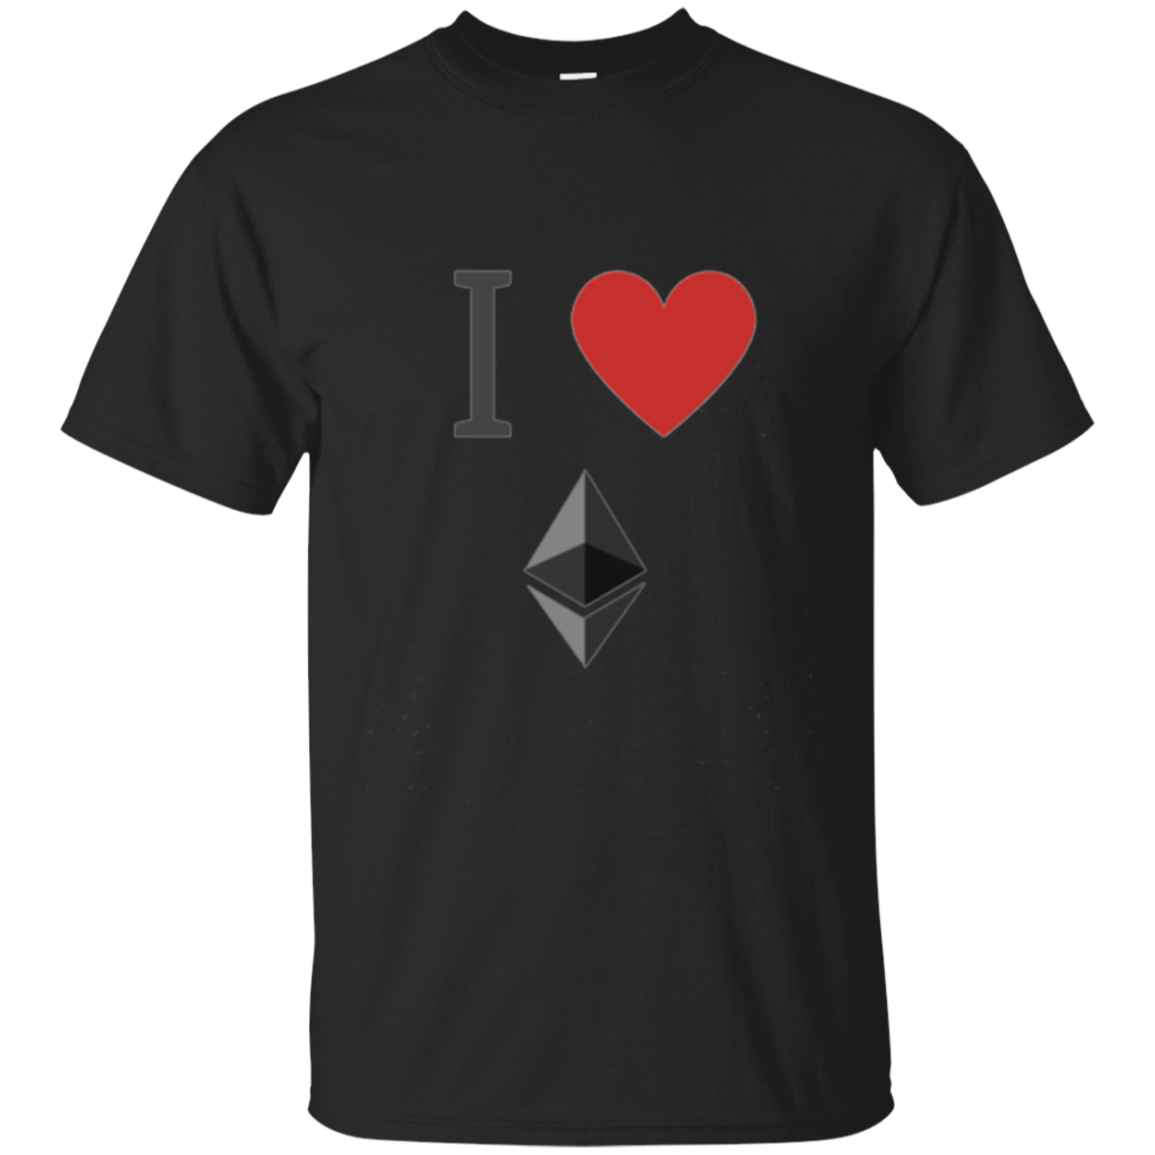 Ethereum Shirt - I Love Ethereum - ETH Crypto Bitcoin